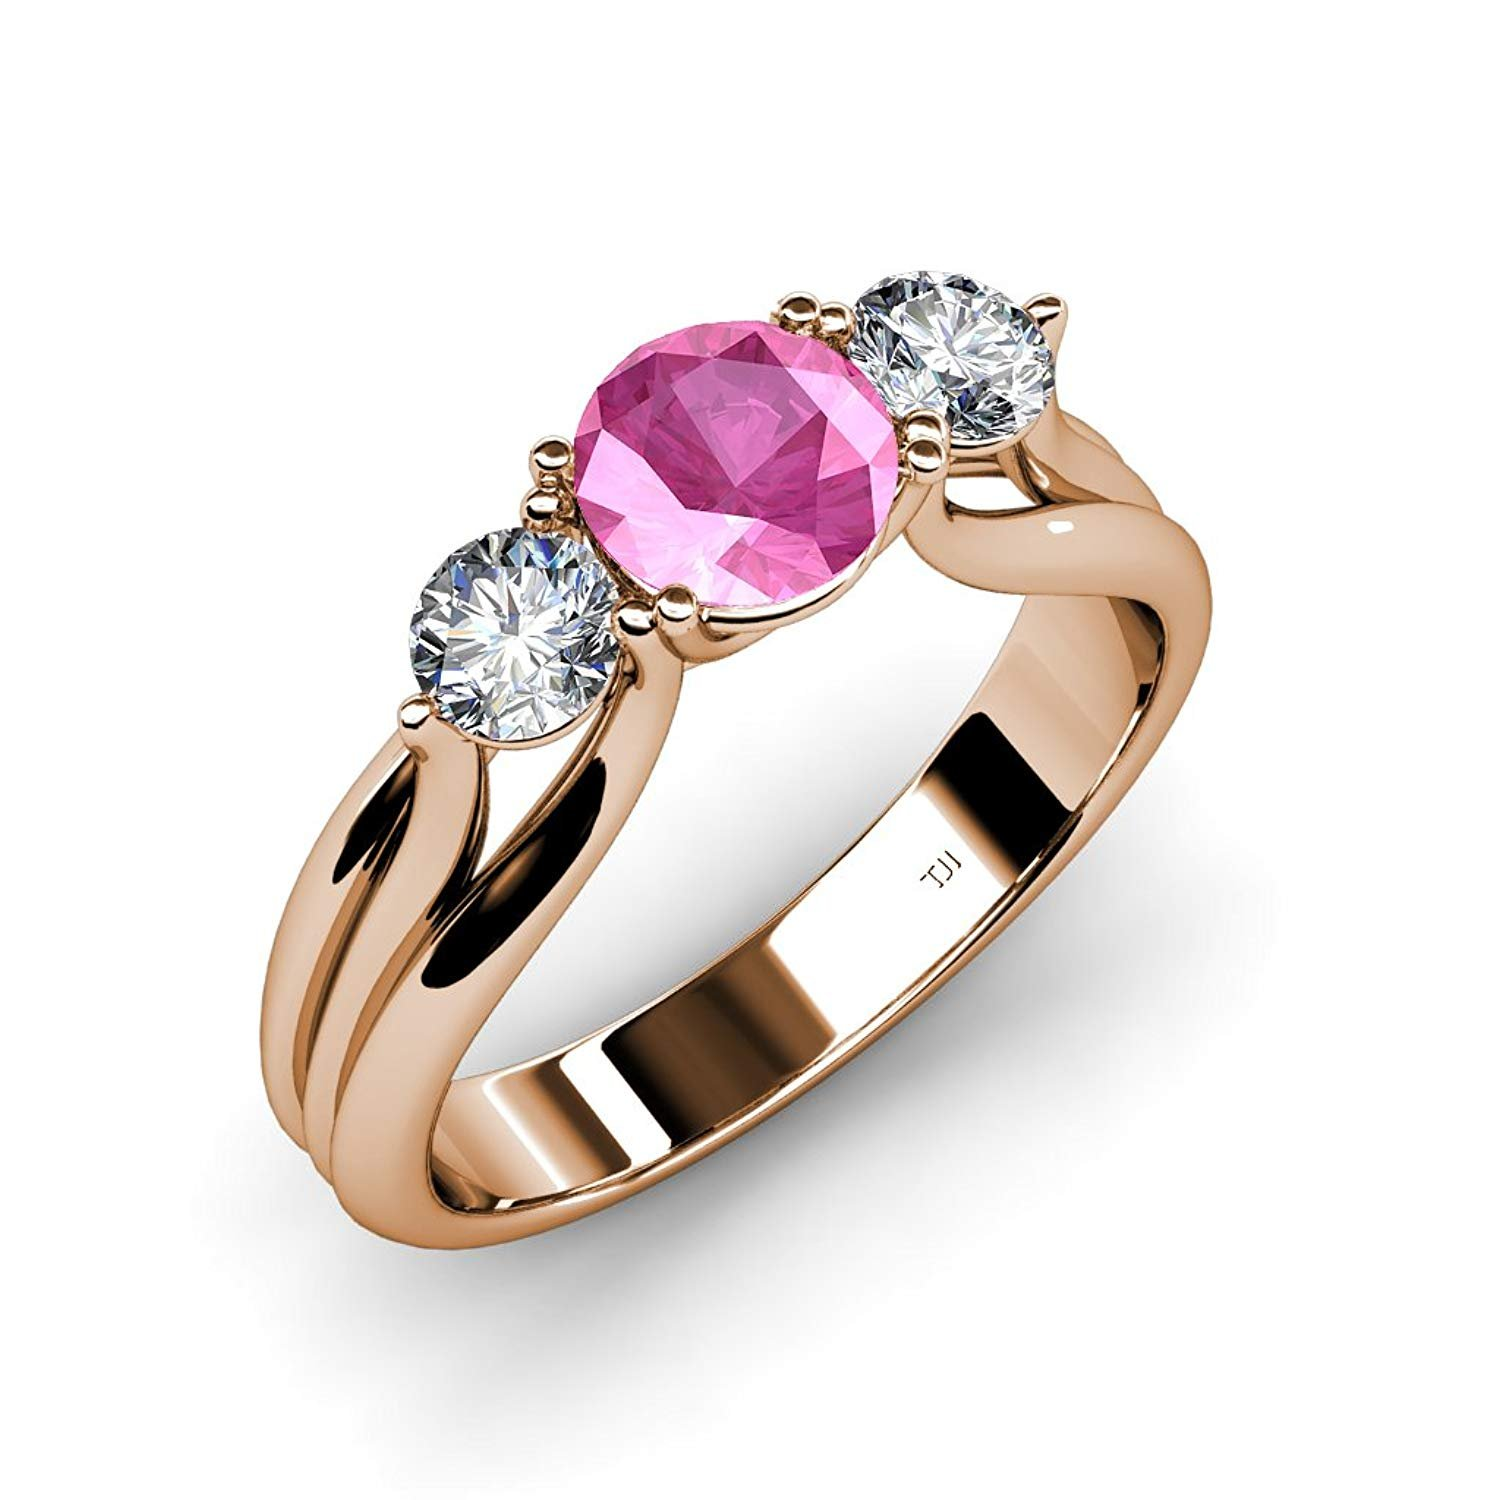 Pink Sapphire and Diamond Three Stone Ring with Thick Shank 1.44 ct tw in 14K White Gold.size 6.5 by TriJewels